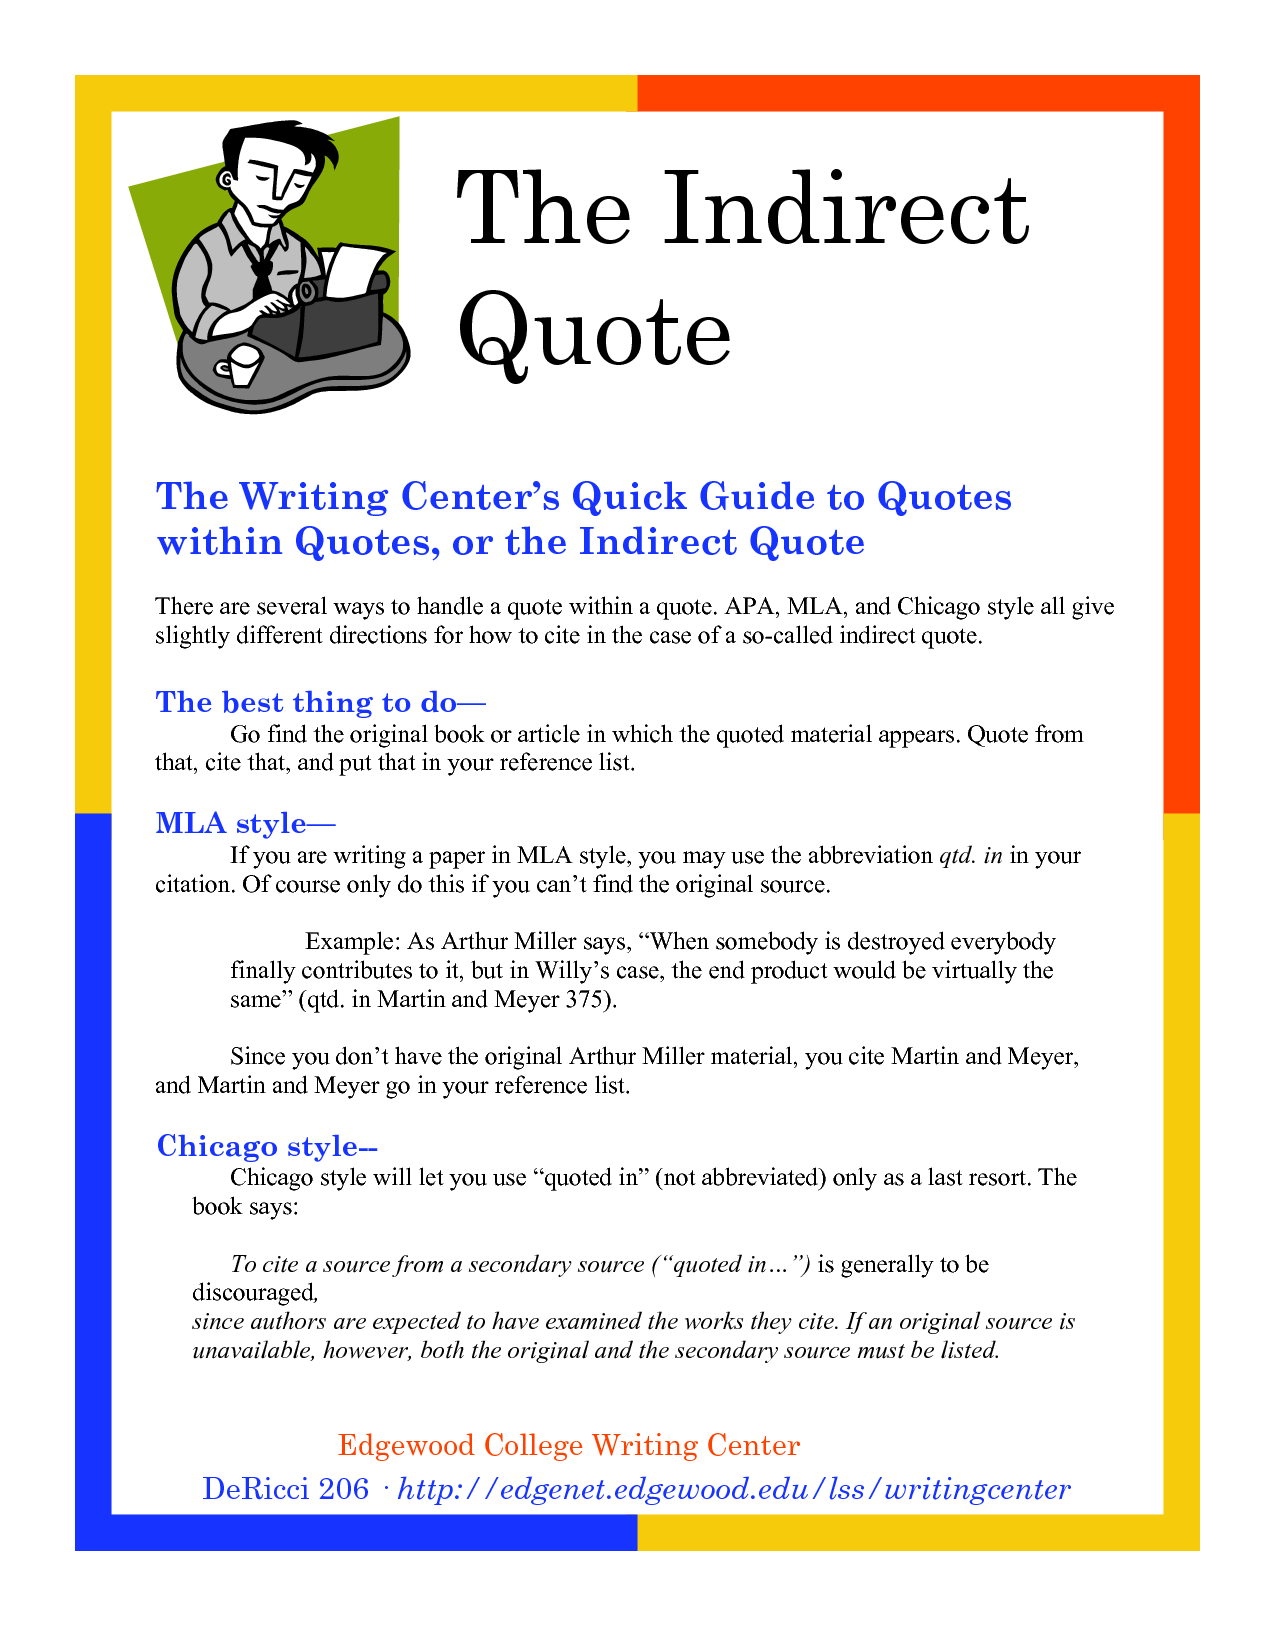 Essay contests 2015 adults